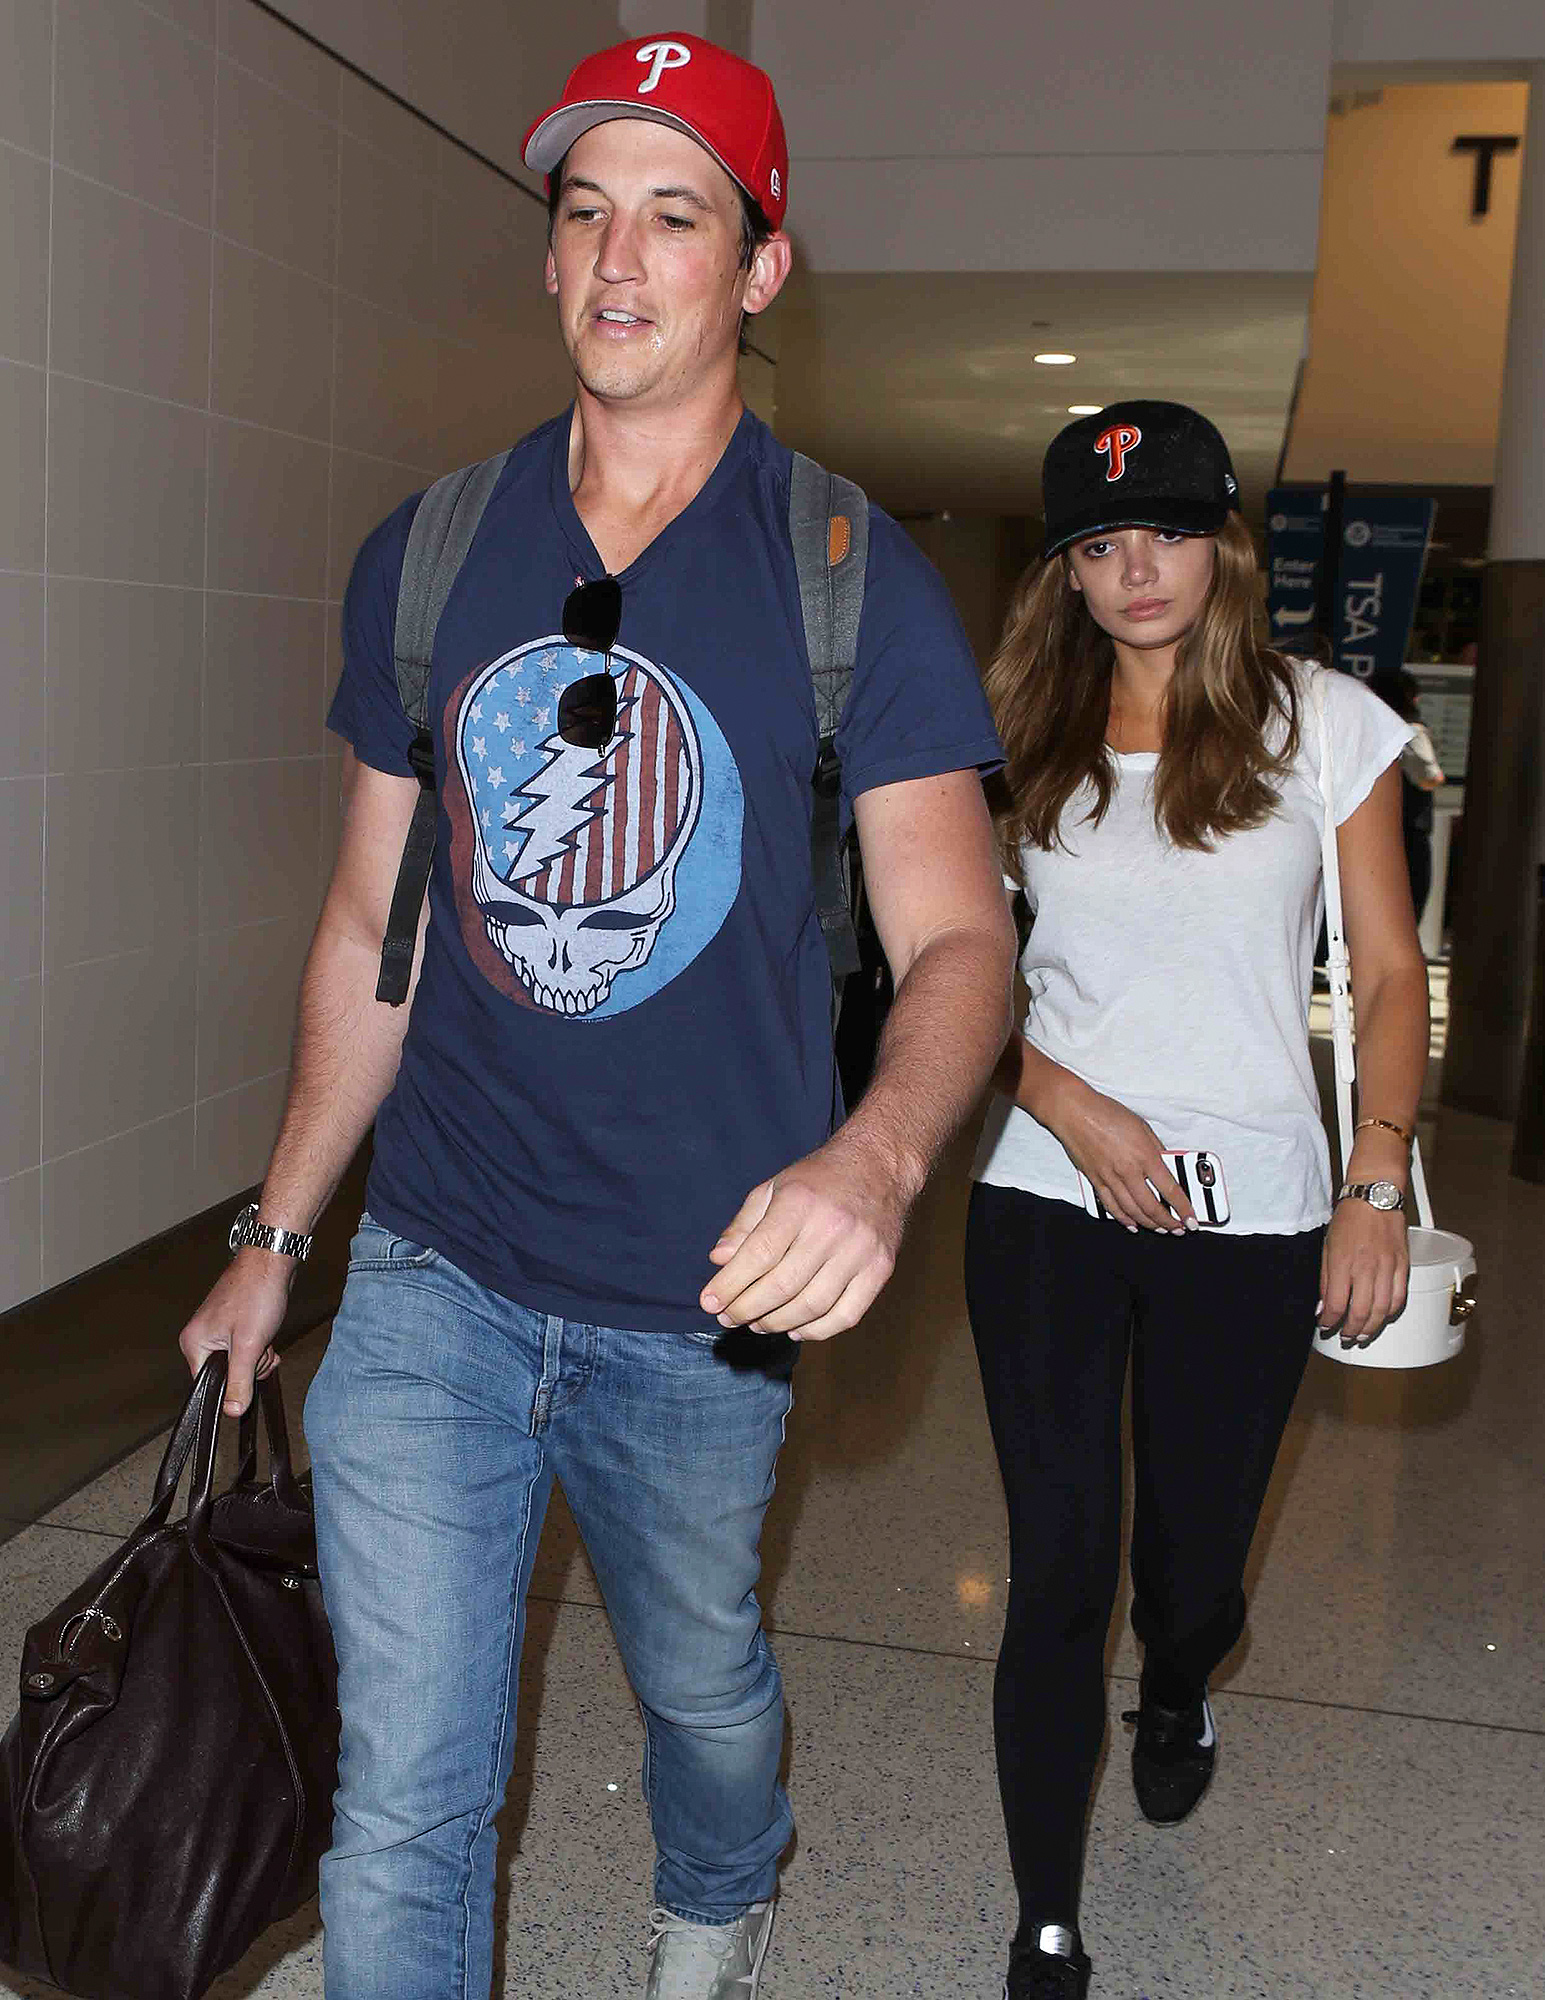 Miles Teller and his girlfriend arrive at LAX Airport in Los Angeles, Ca